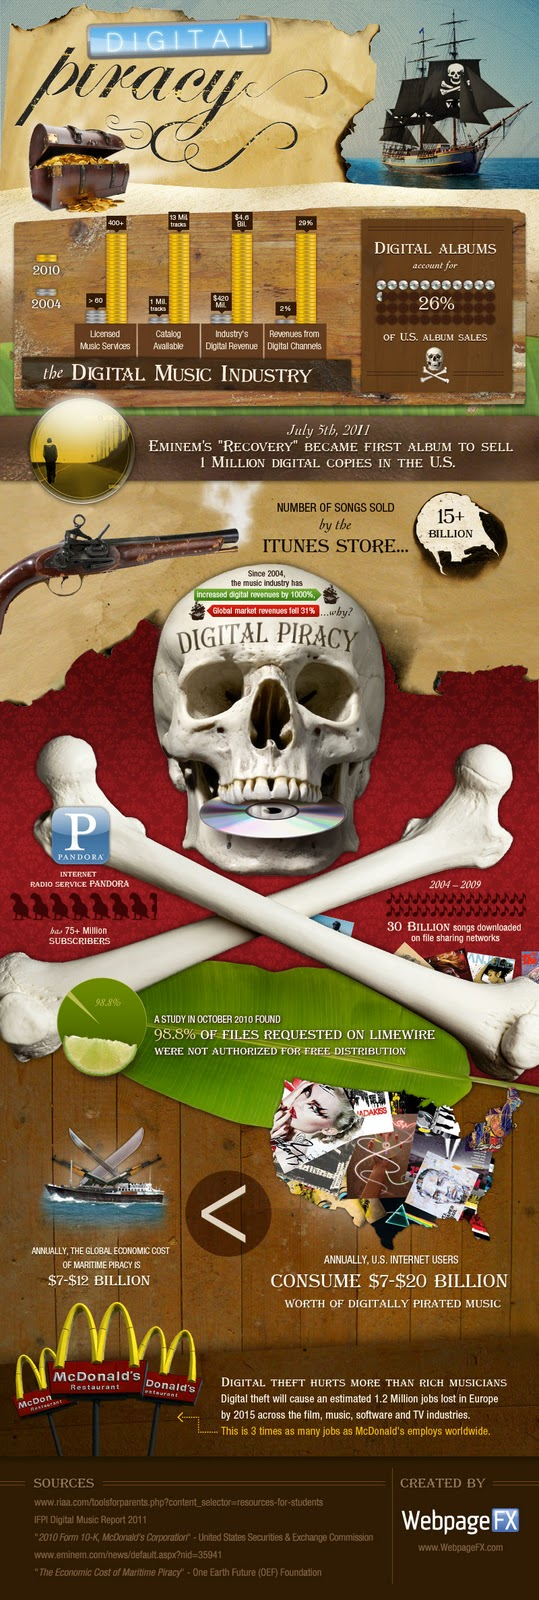 Digital Piracy infographic image from Bobby Owsinski's Music 3.0 blog